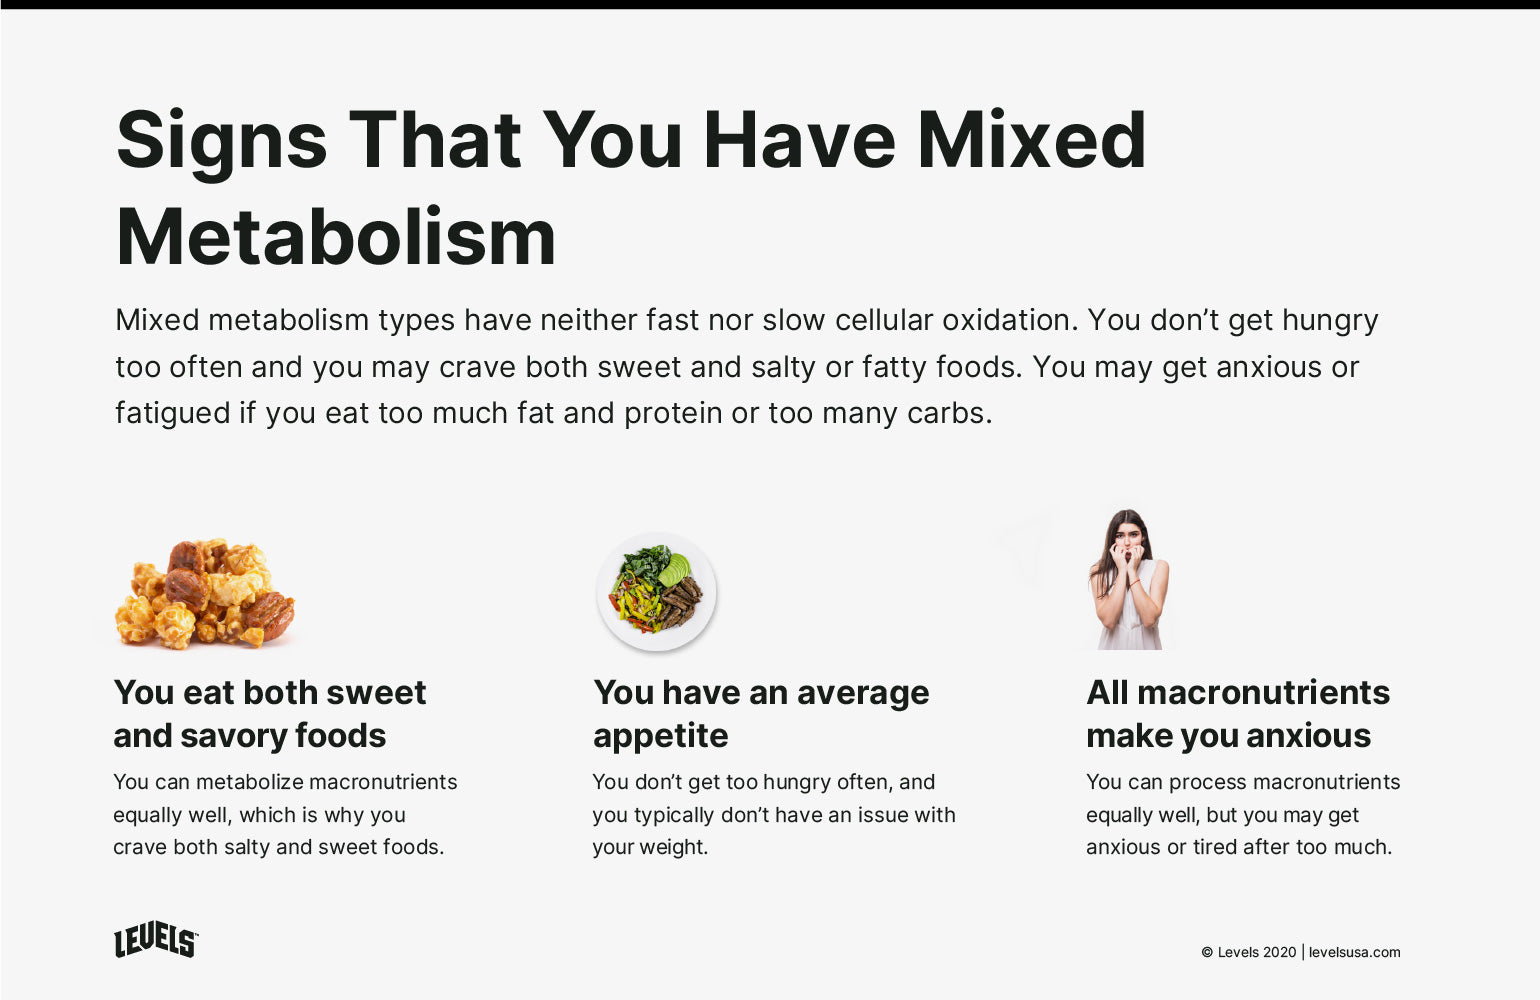 Signs You Have Mixed Metabolism - Infographic